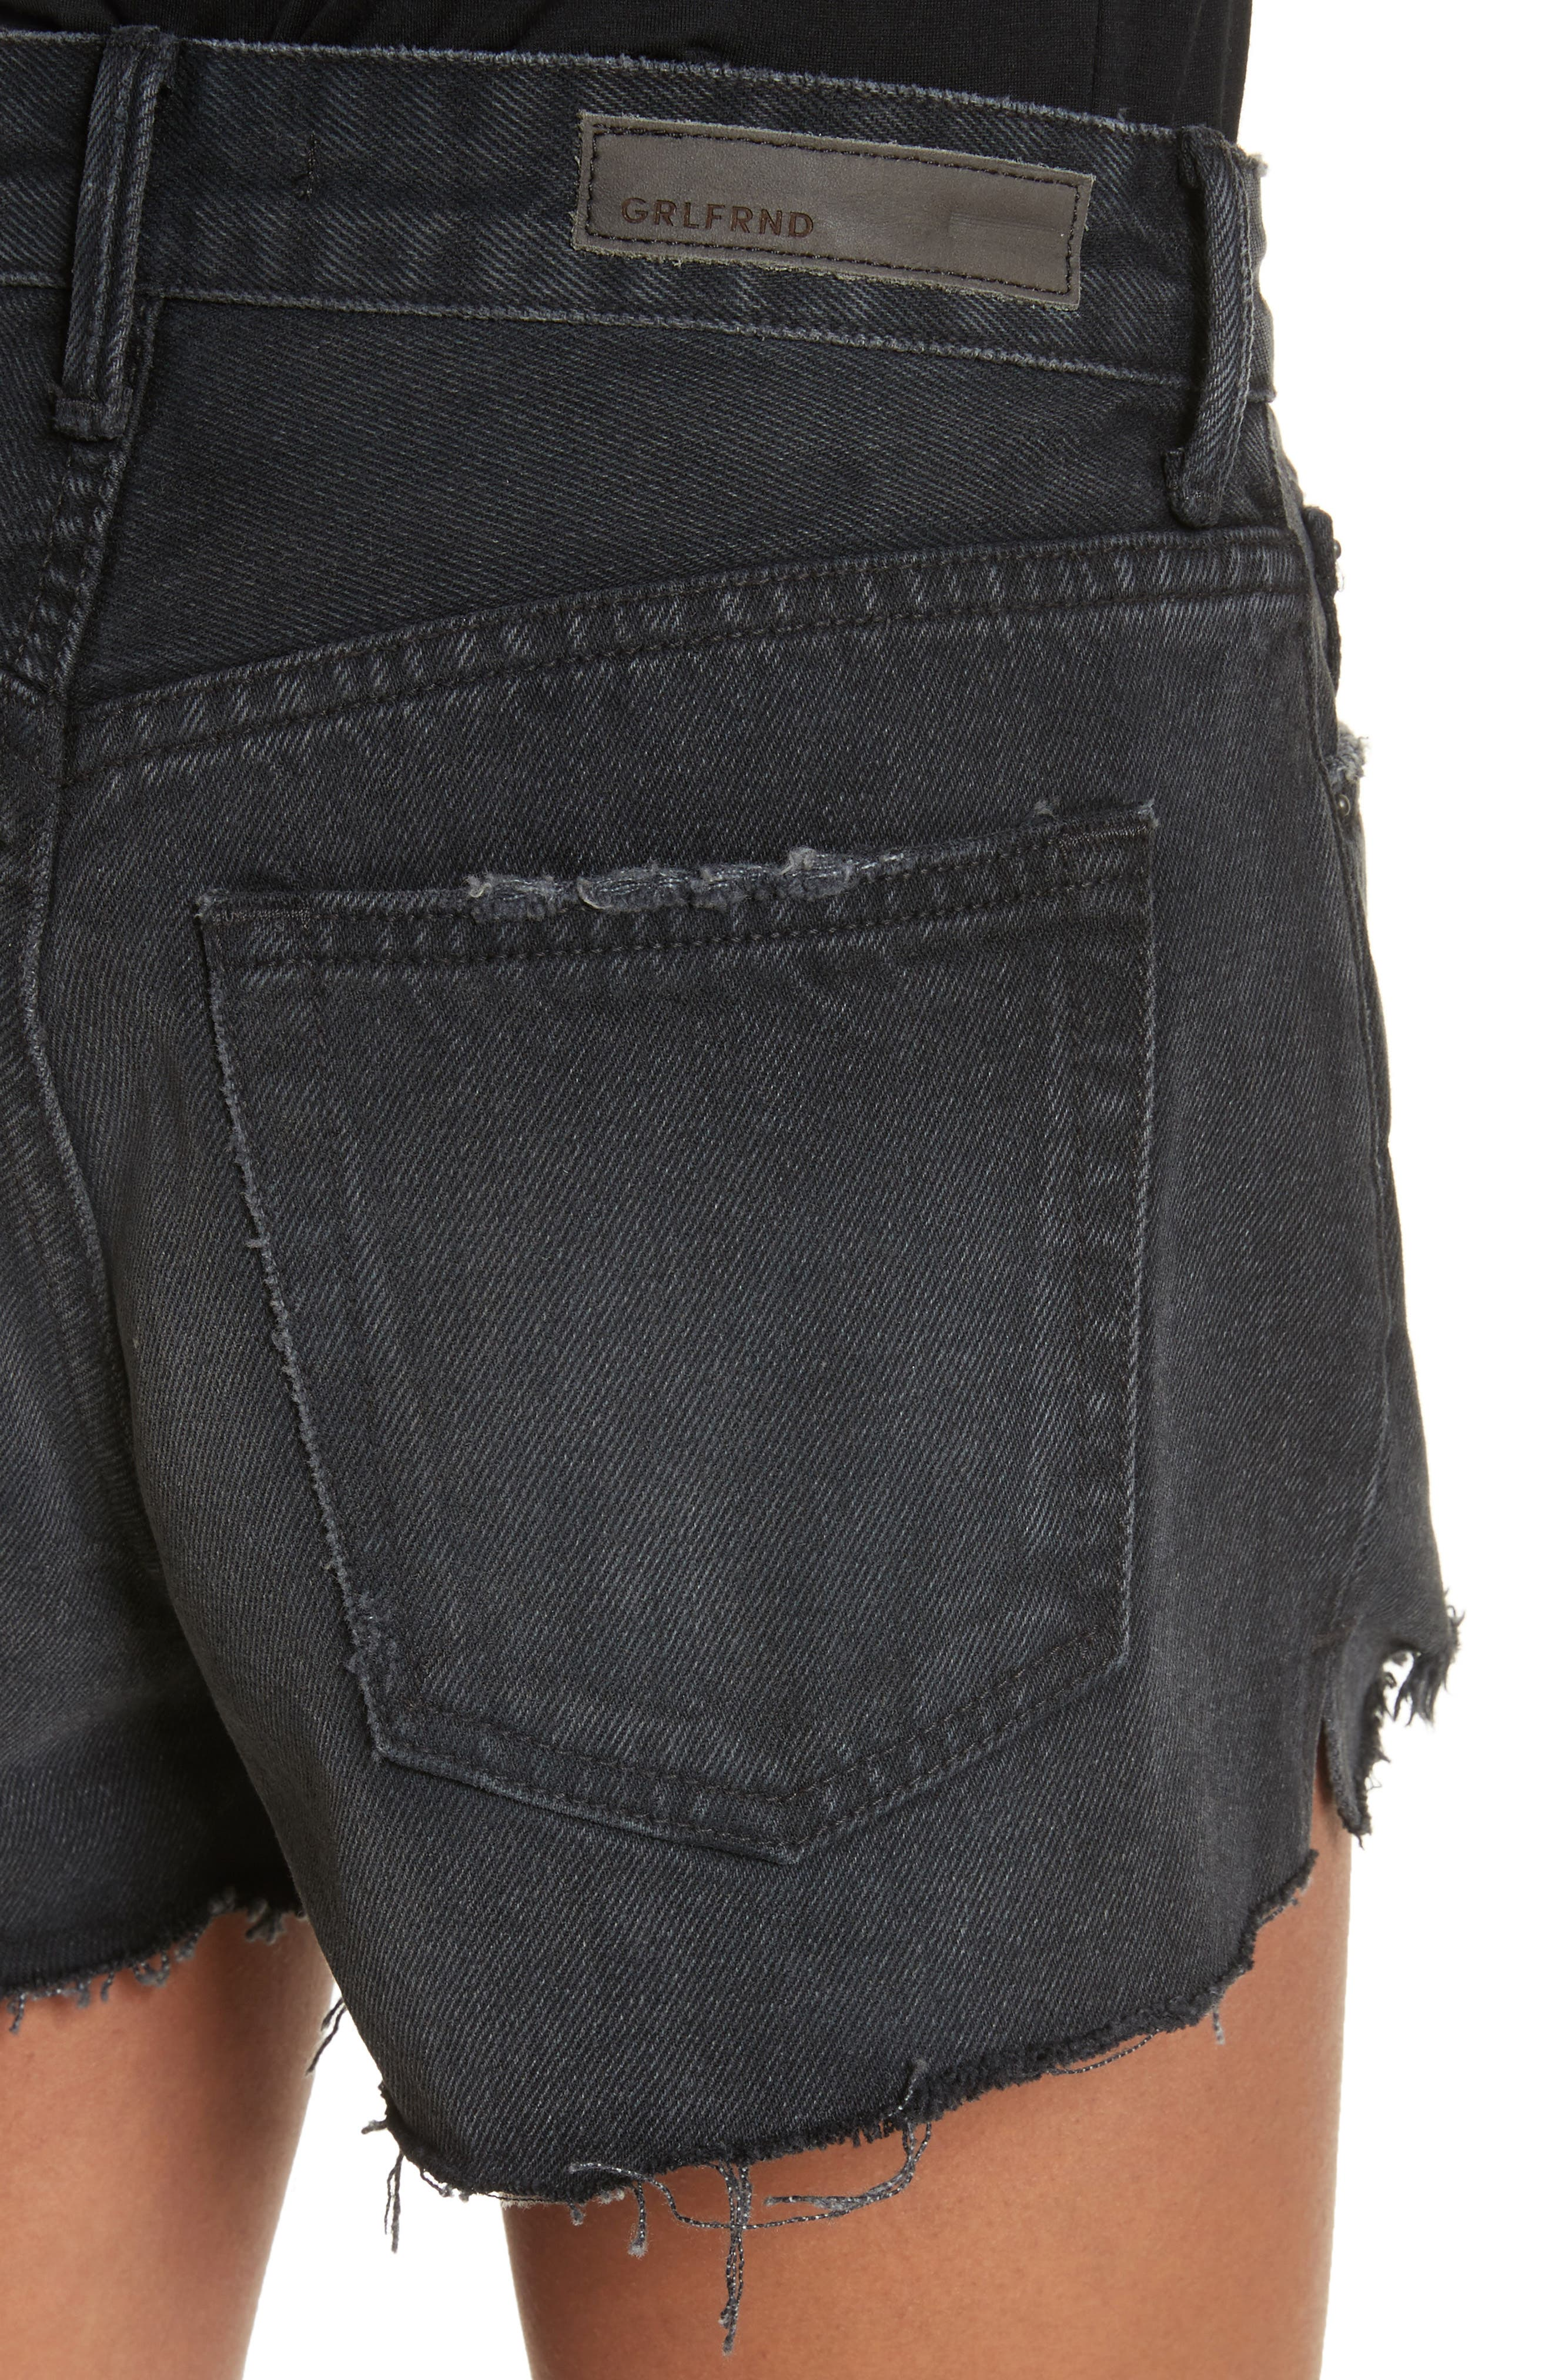 Cindy Rigid High Waist Denim Shorts,                             Alternate thumbnail 4, color,                             High Tide